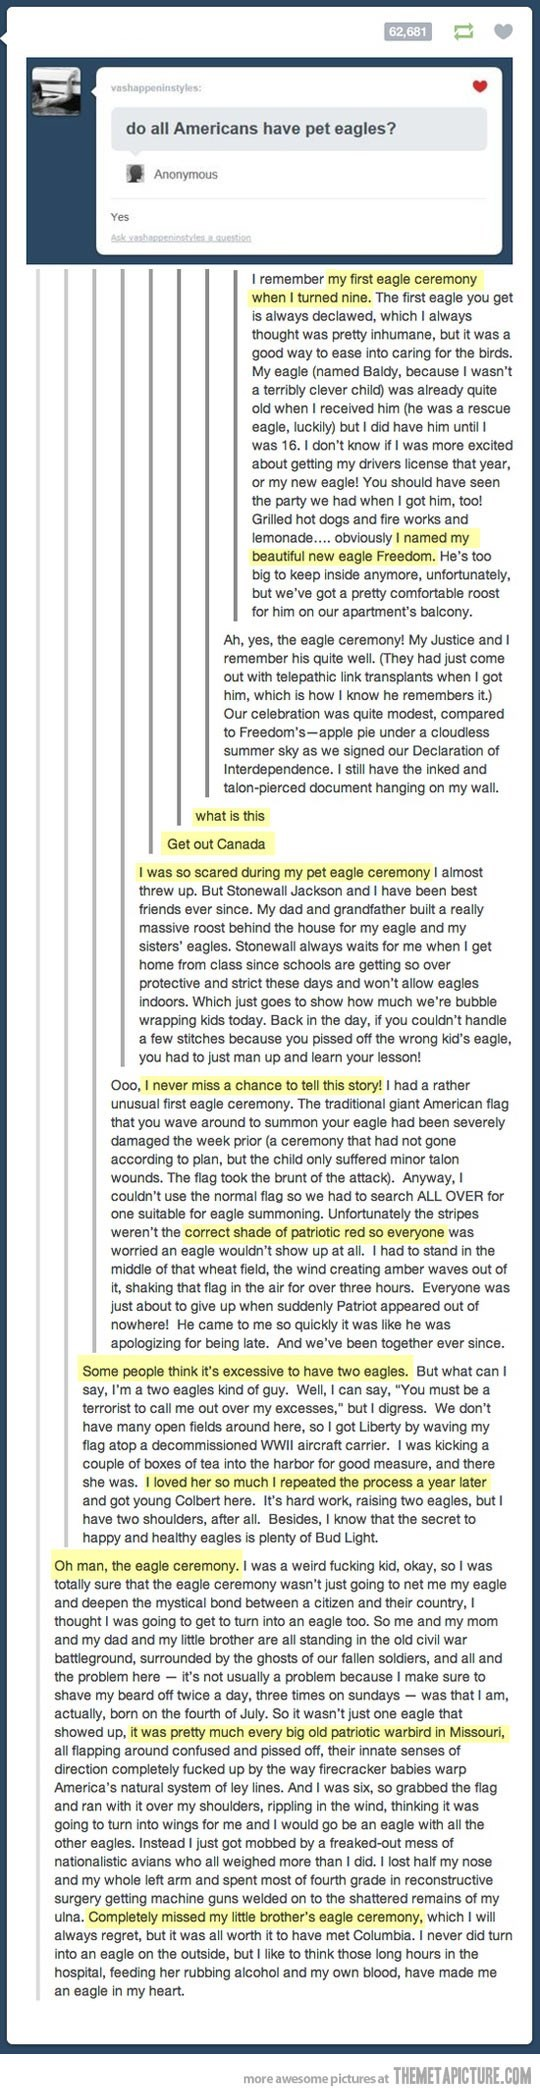 eagles tumblr murica trolling - 8816740608